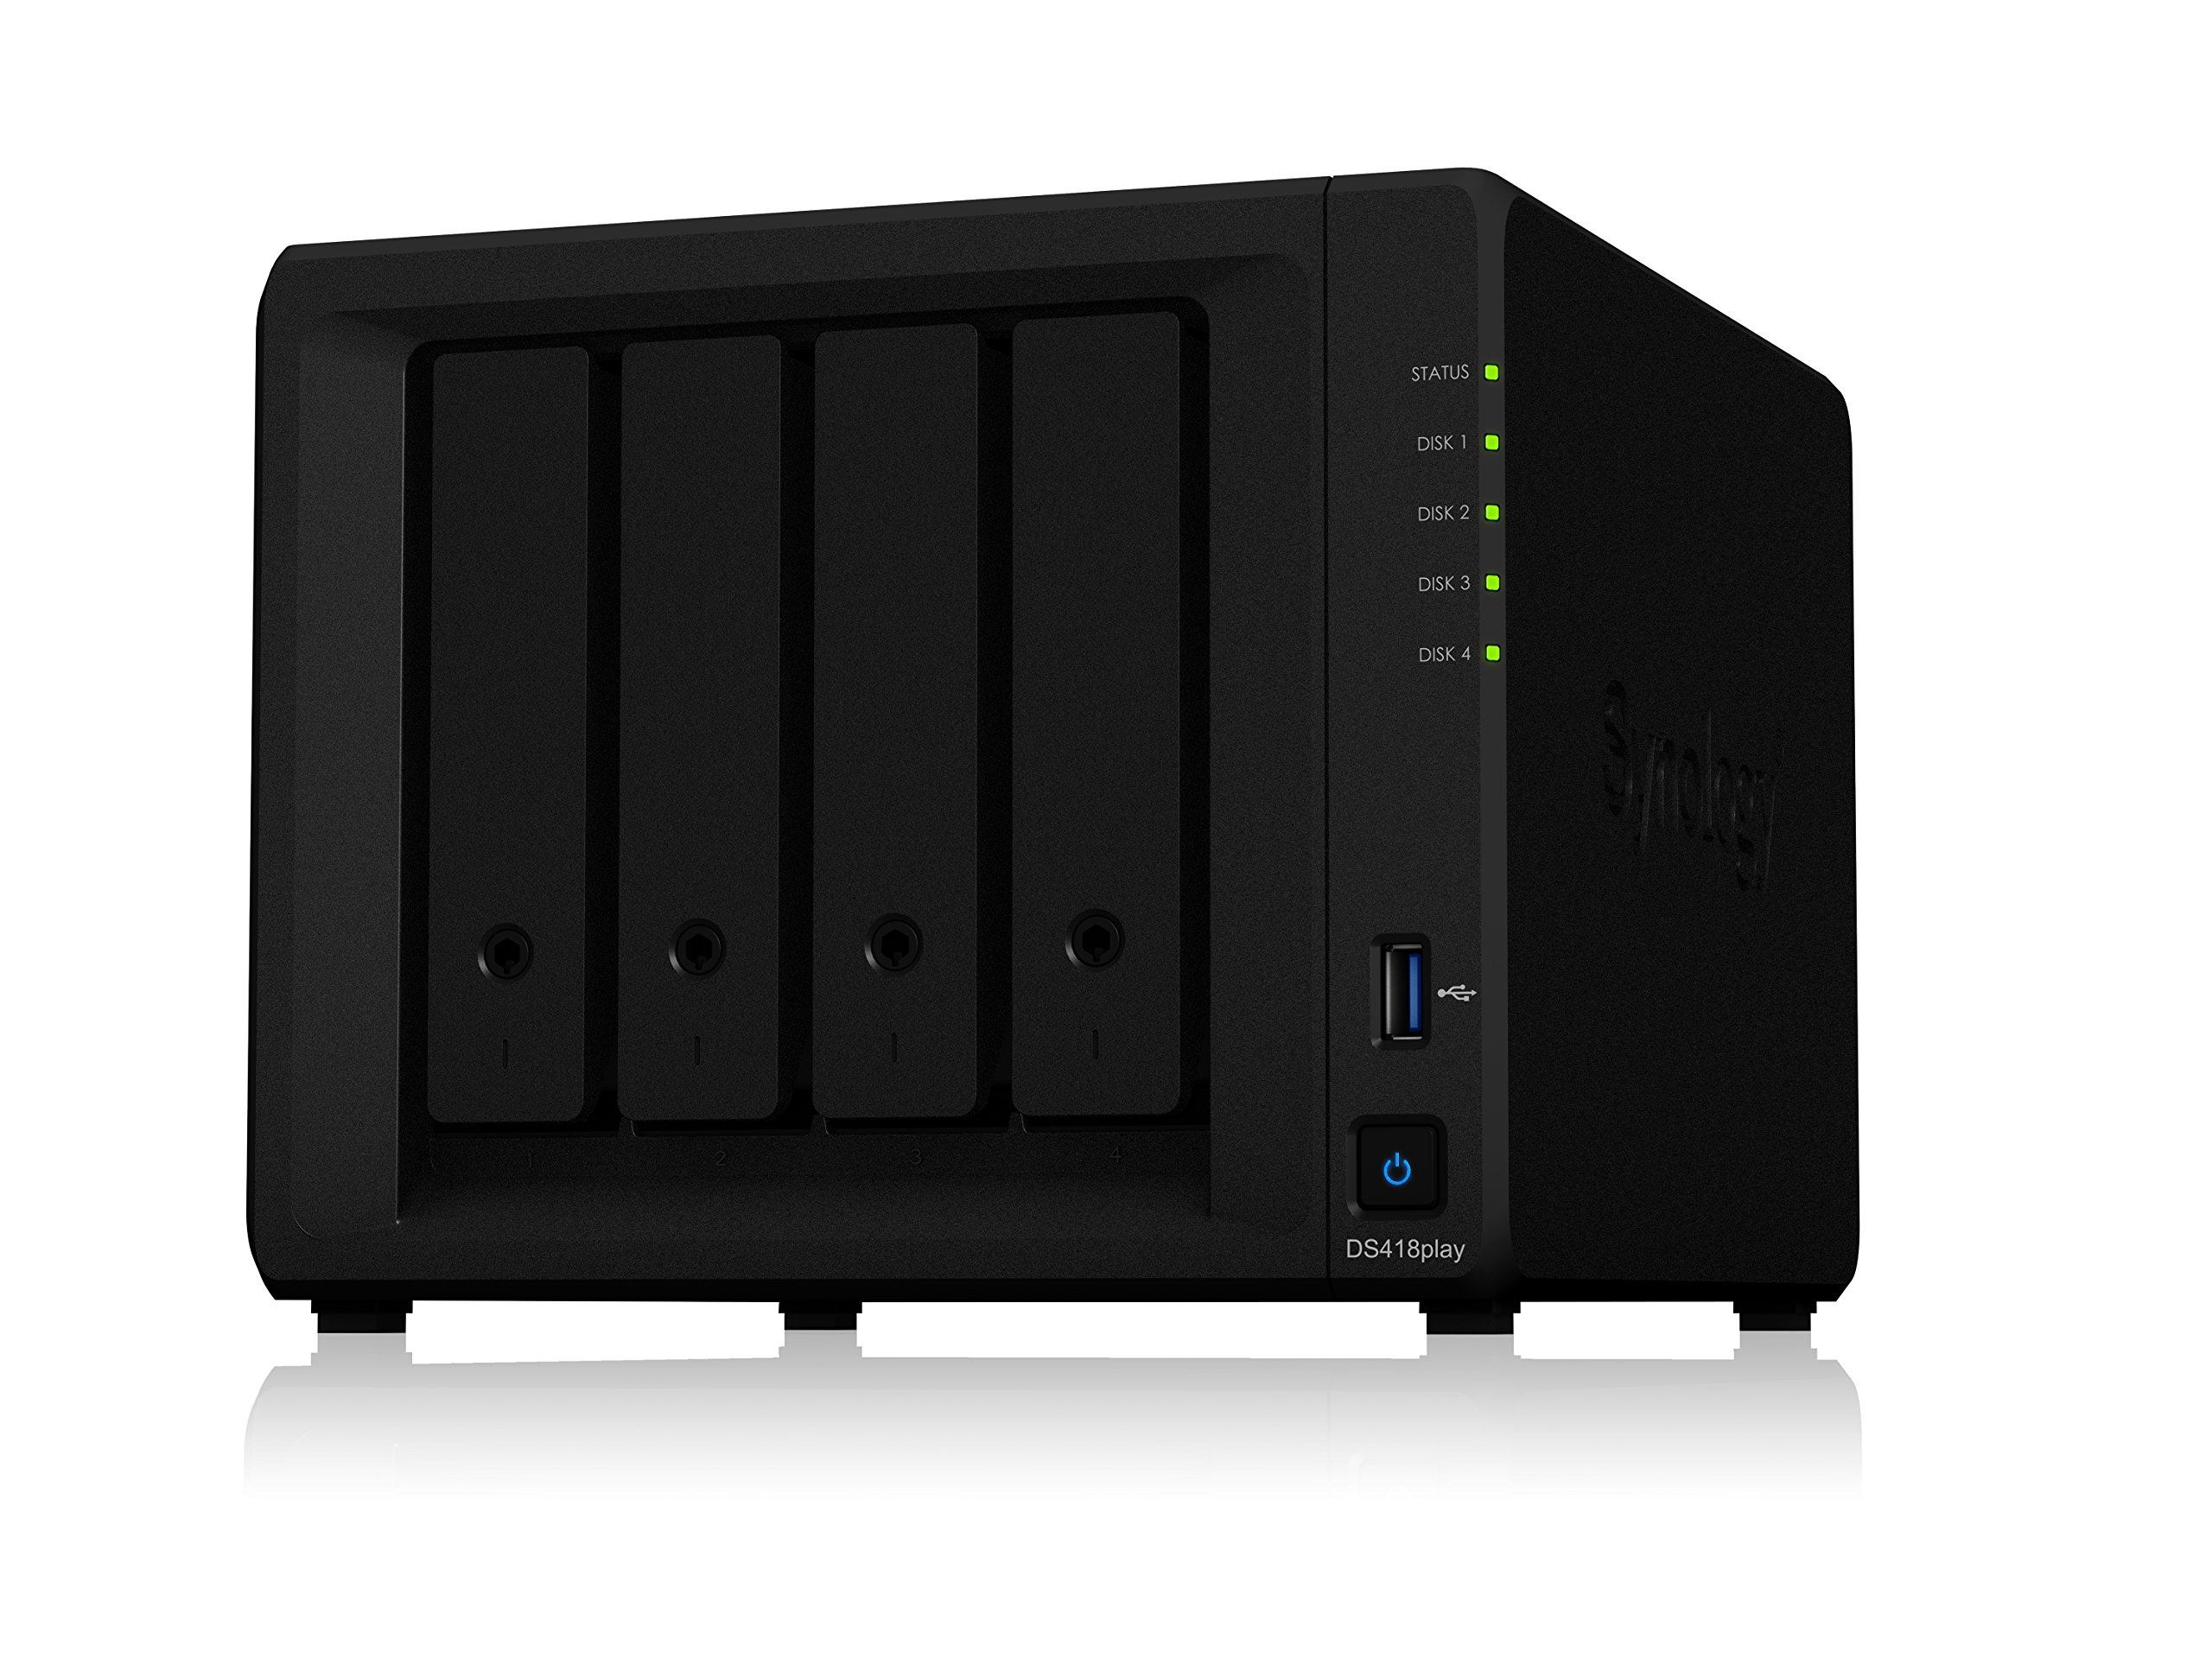 Synology DS418play NAS Disk Station, 4-bay, 2GB DDR3L (Diskless) by Synology